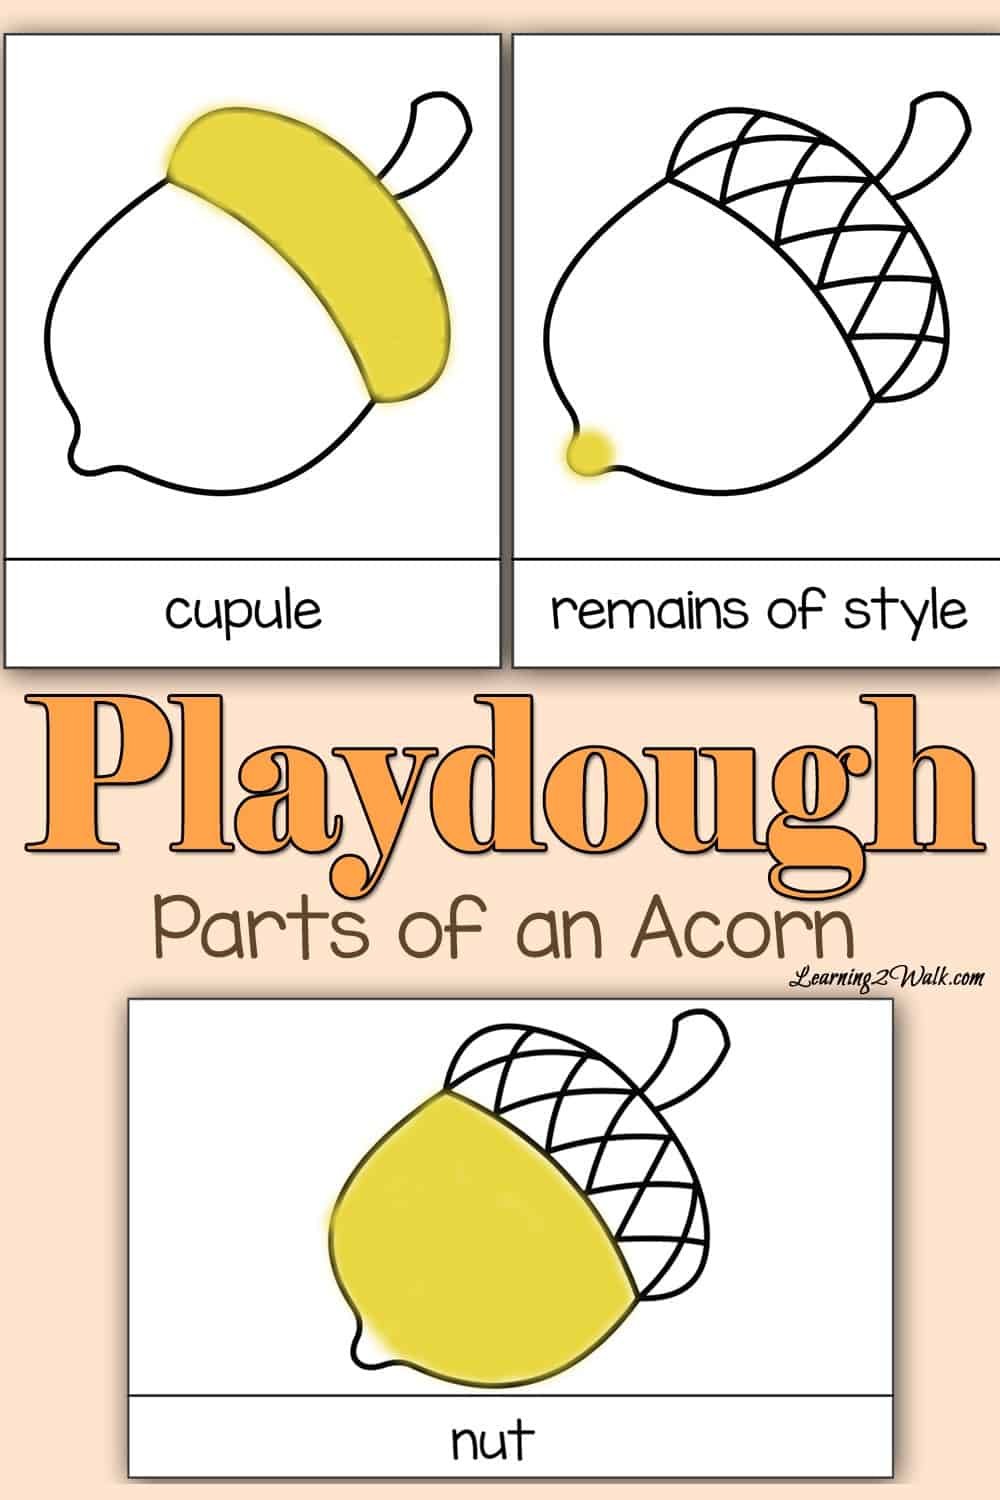 Want to learn the parts of an acorn? Why not create a fun activity by adding playdough as a fun idea to the learning process?